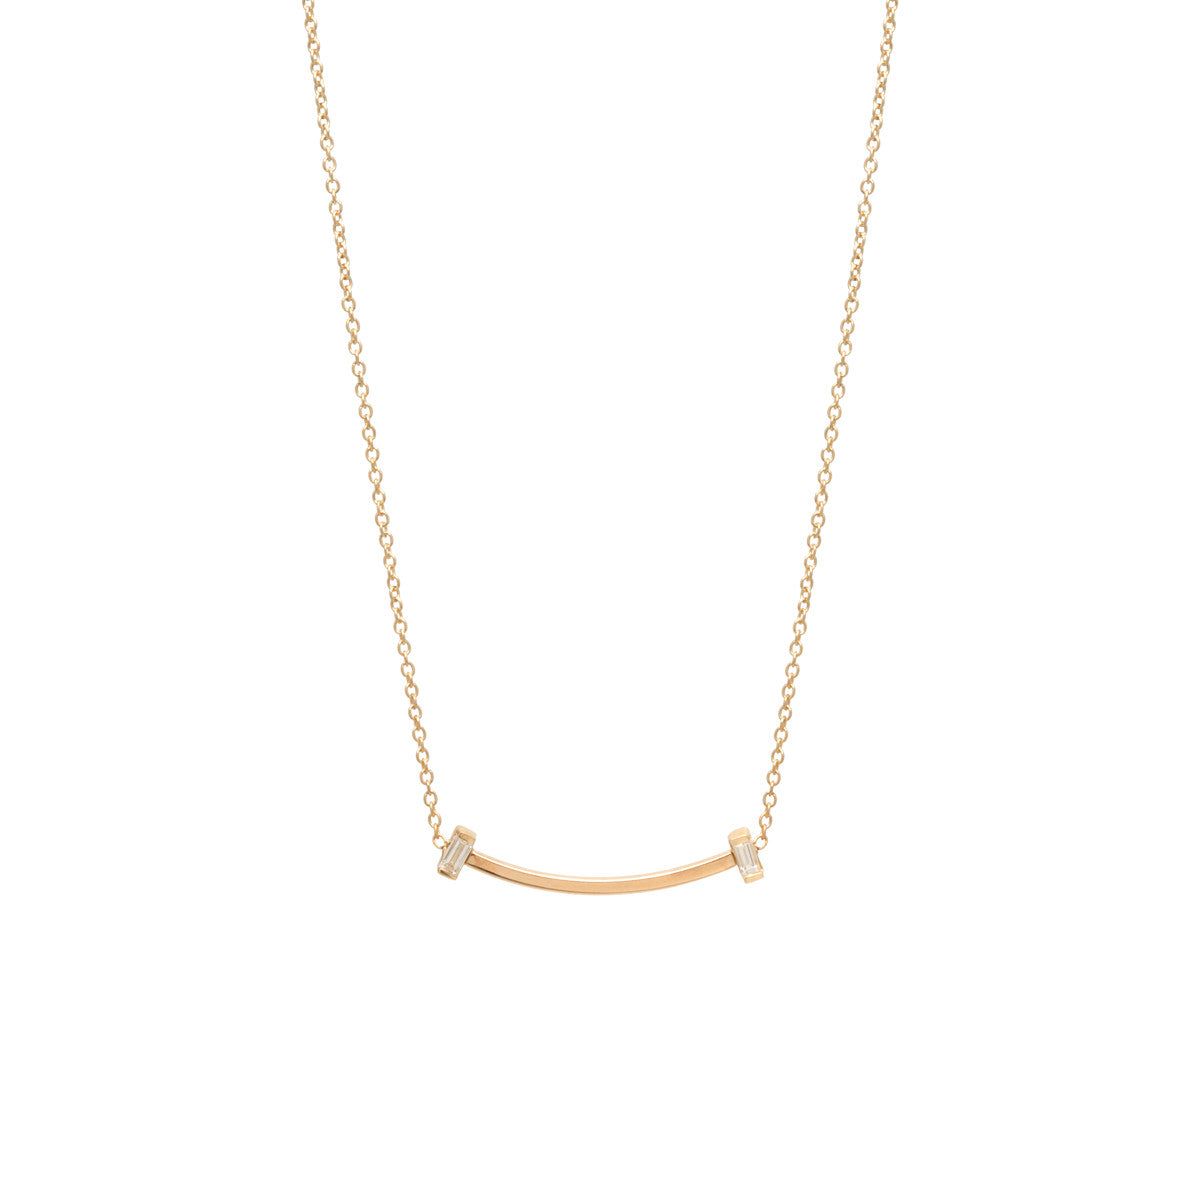 Zoë Chicco 14kt Yellow Gold Vertical Baguette Diamond Curved Bar Necklace